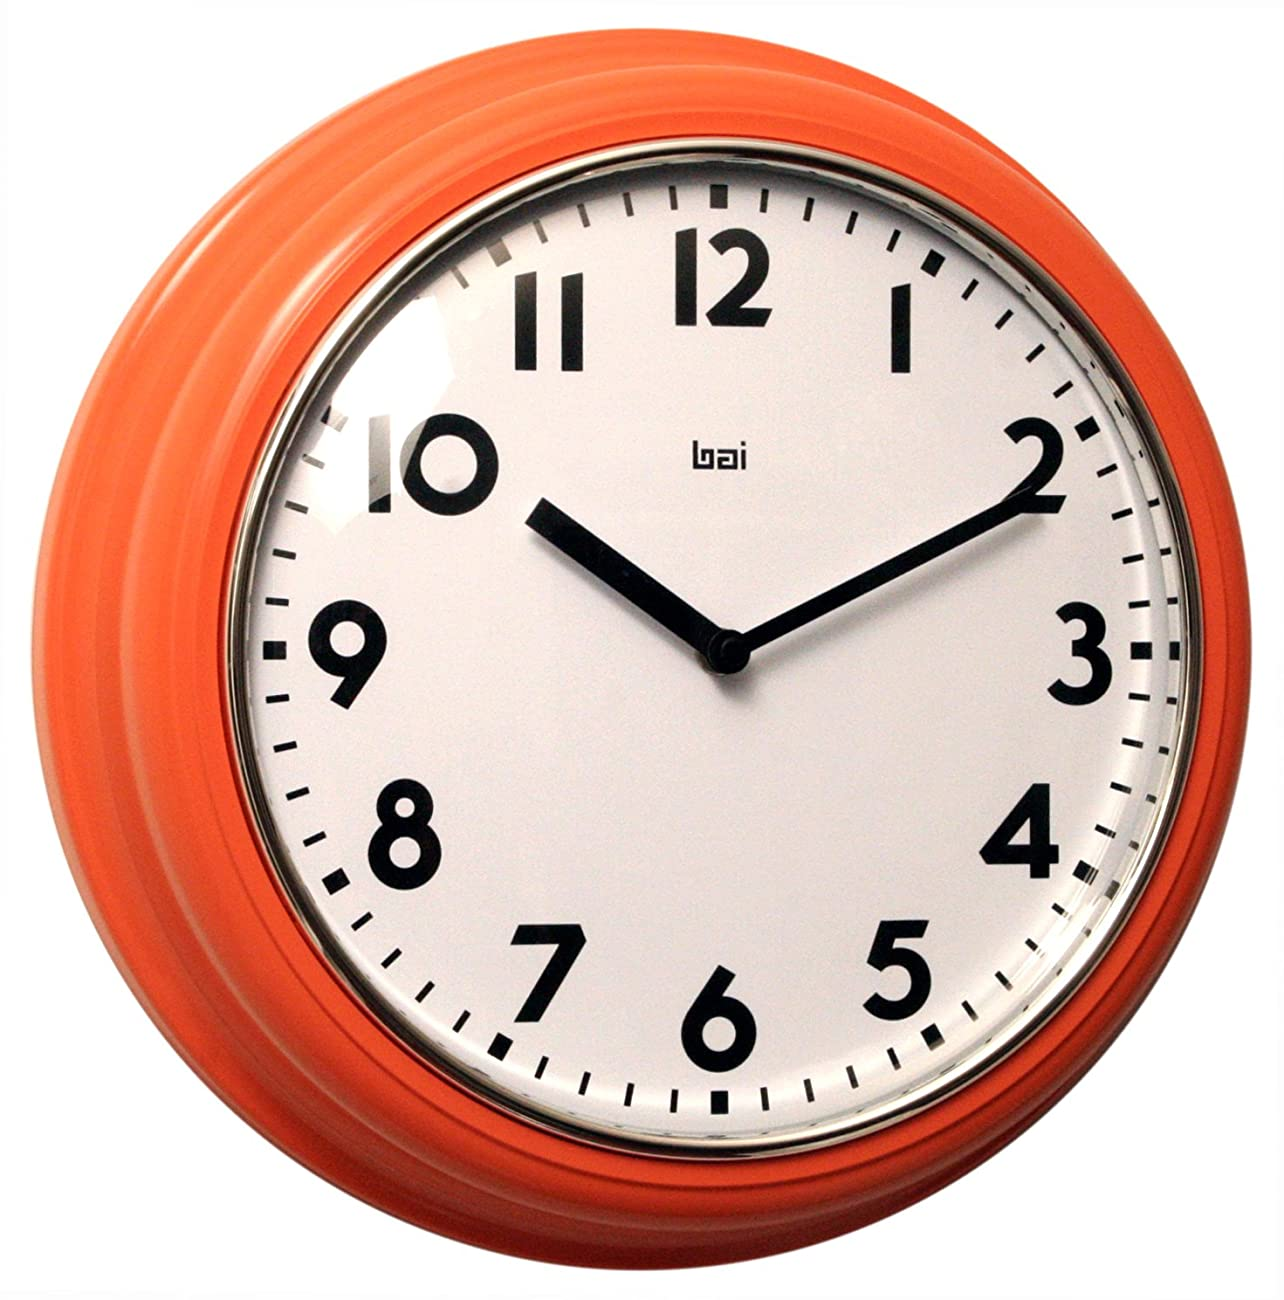 Bai School Wall Clock, Orange 0